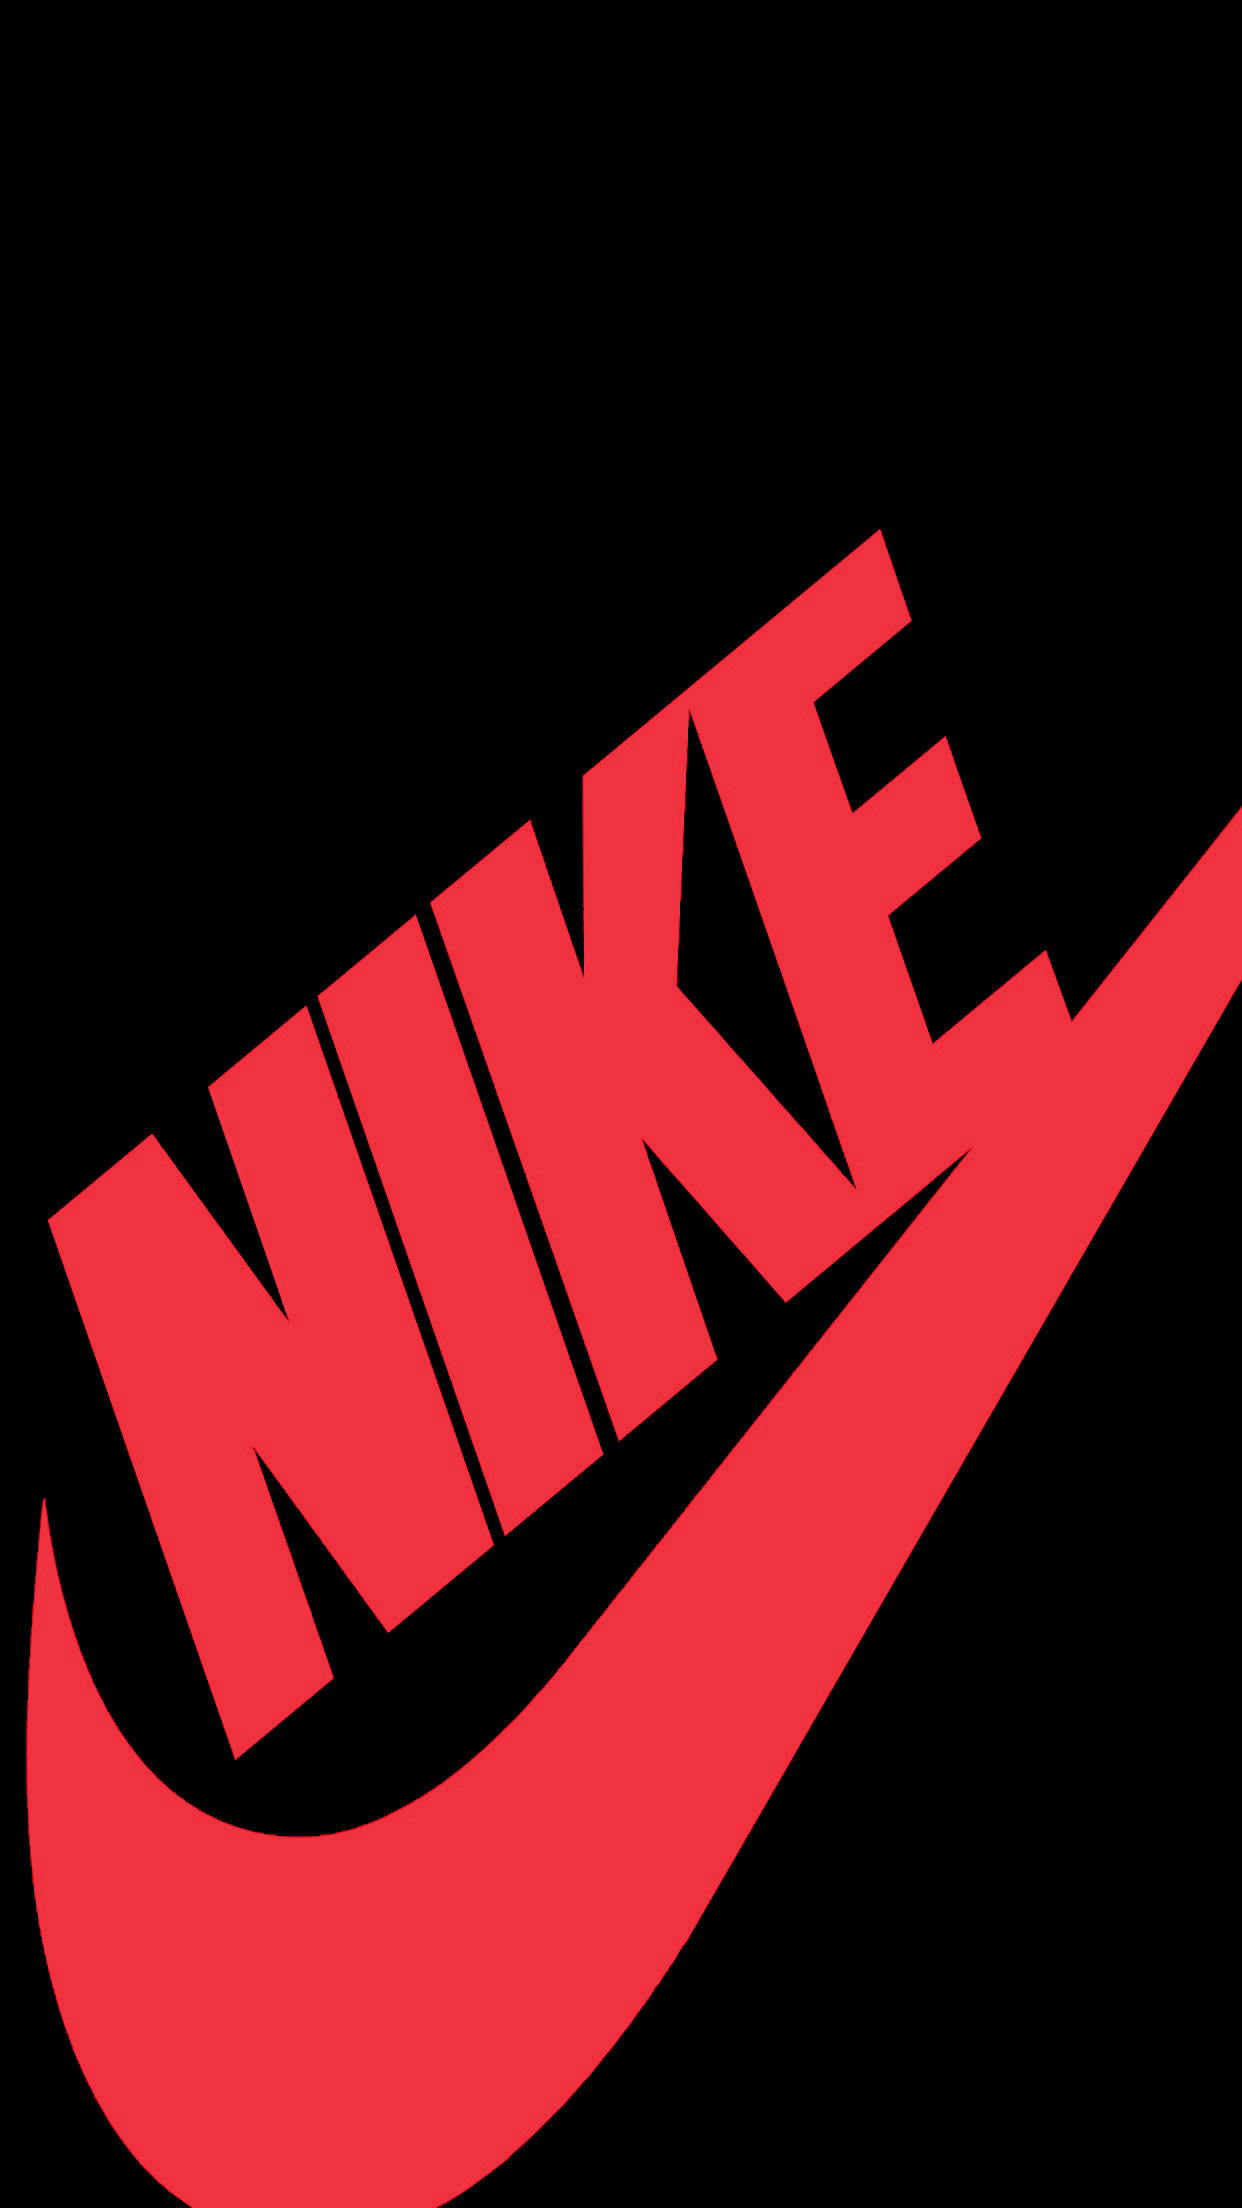 Nike Iphone 6 Wallpaper 74 Images